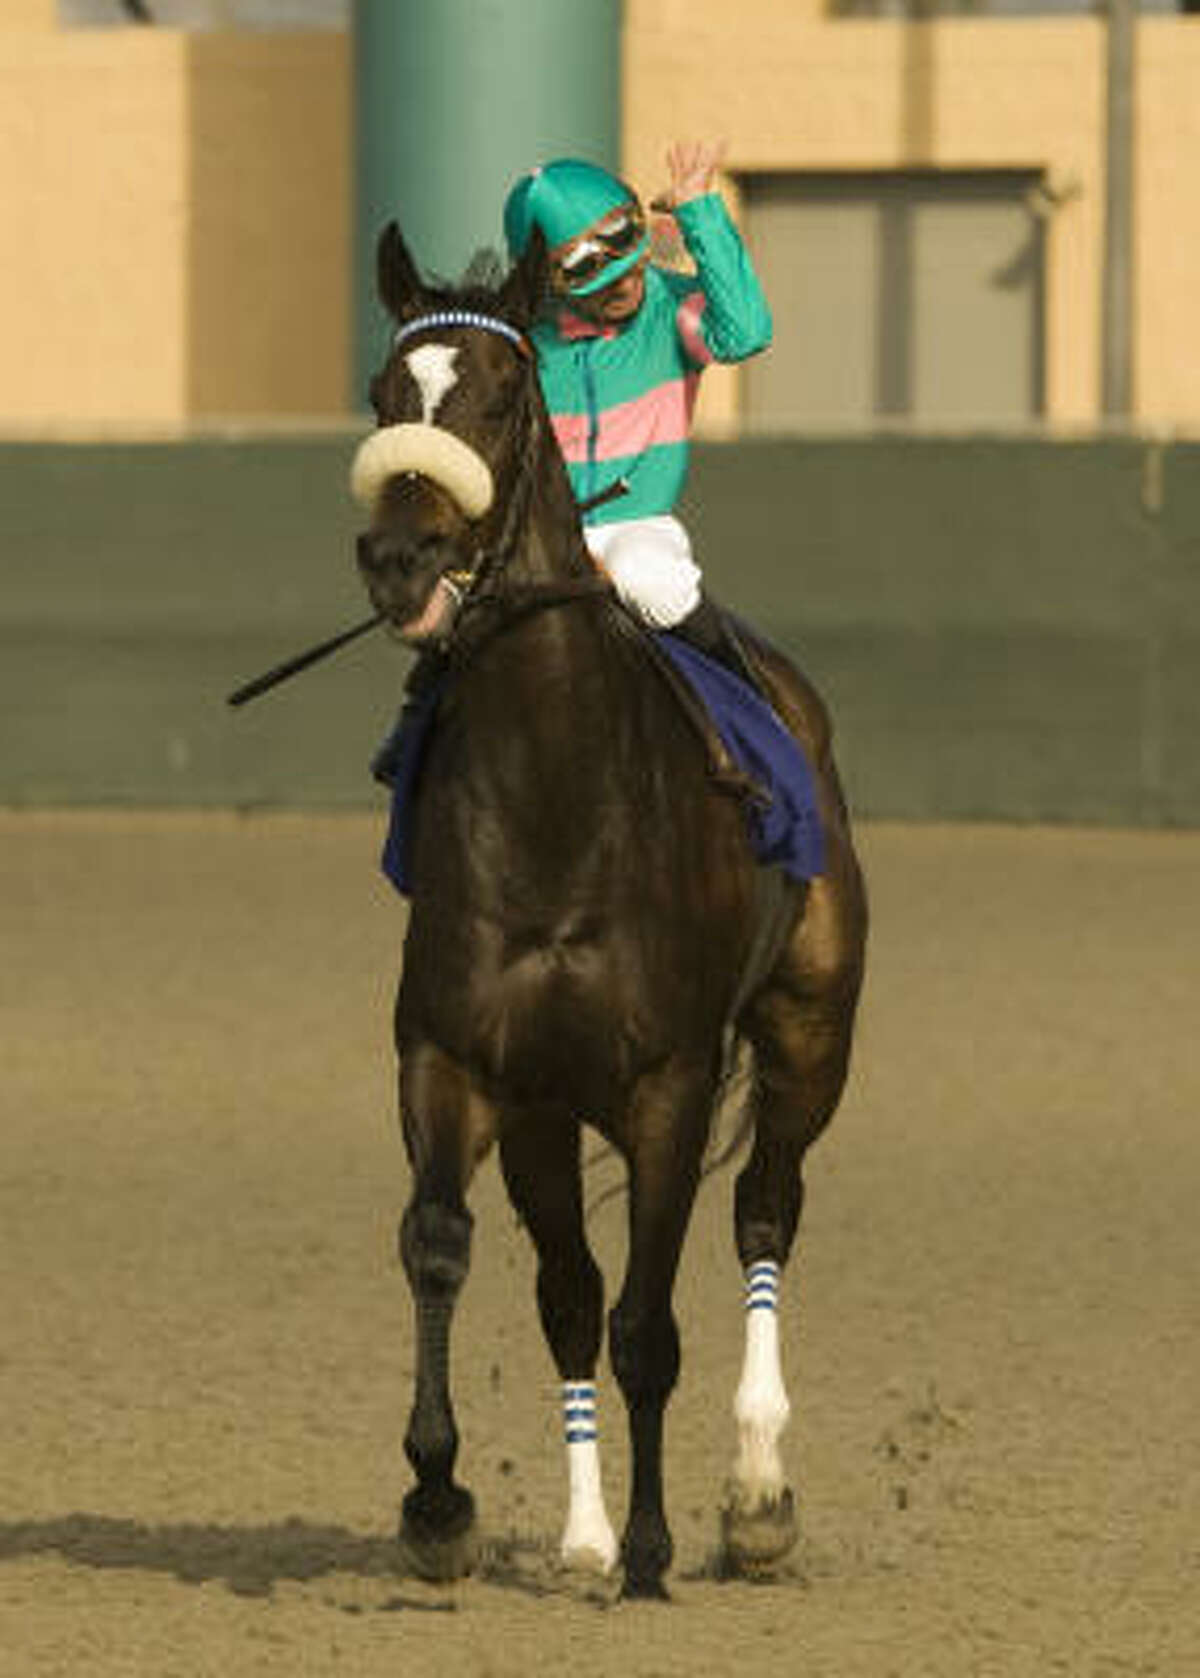 Zenyatta is 12-0 after winning the Clement L. Hirsch Stakes at Del Mar on Sunday.